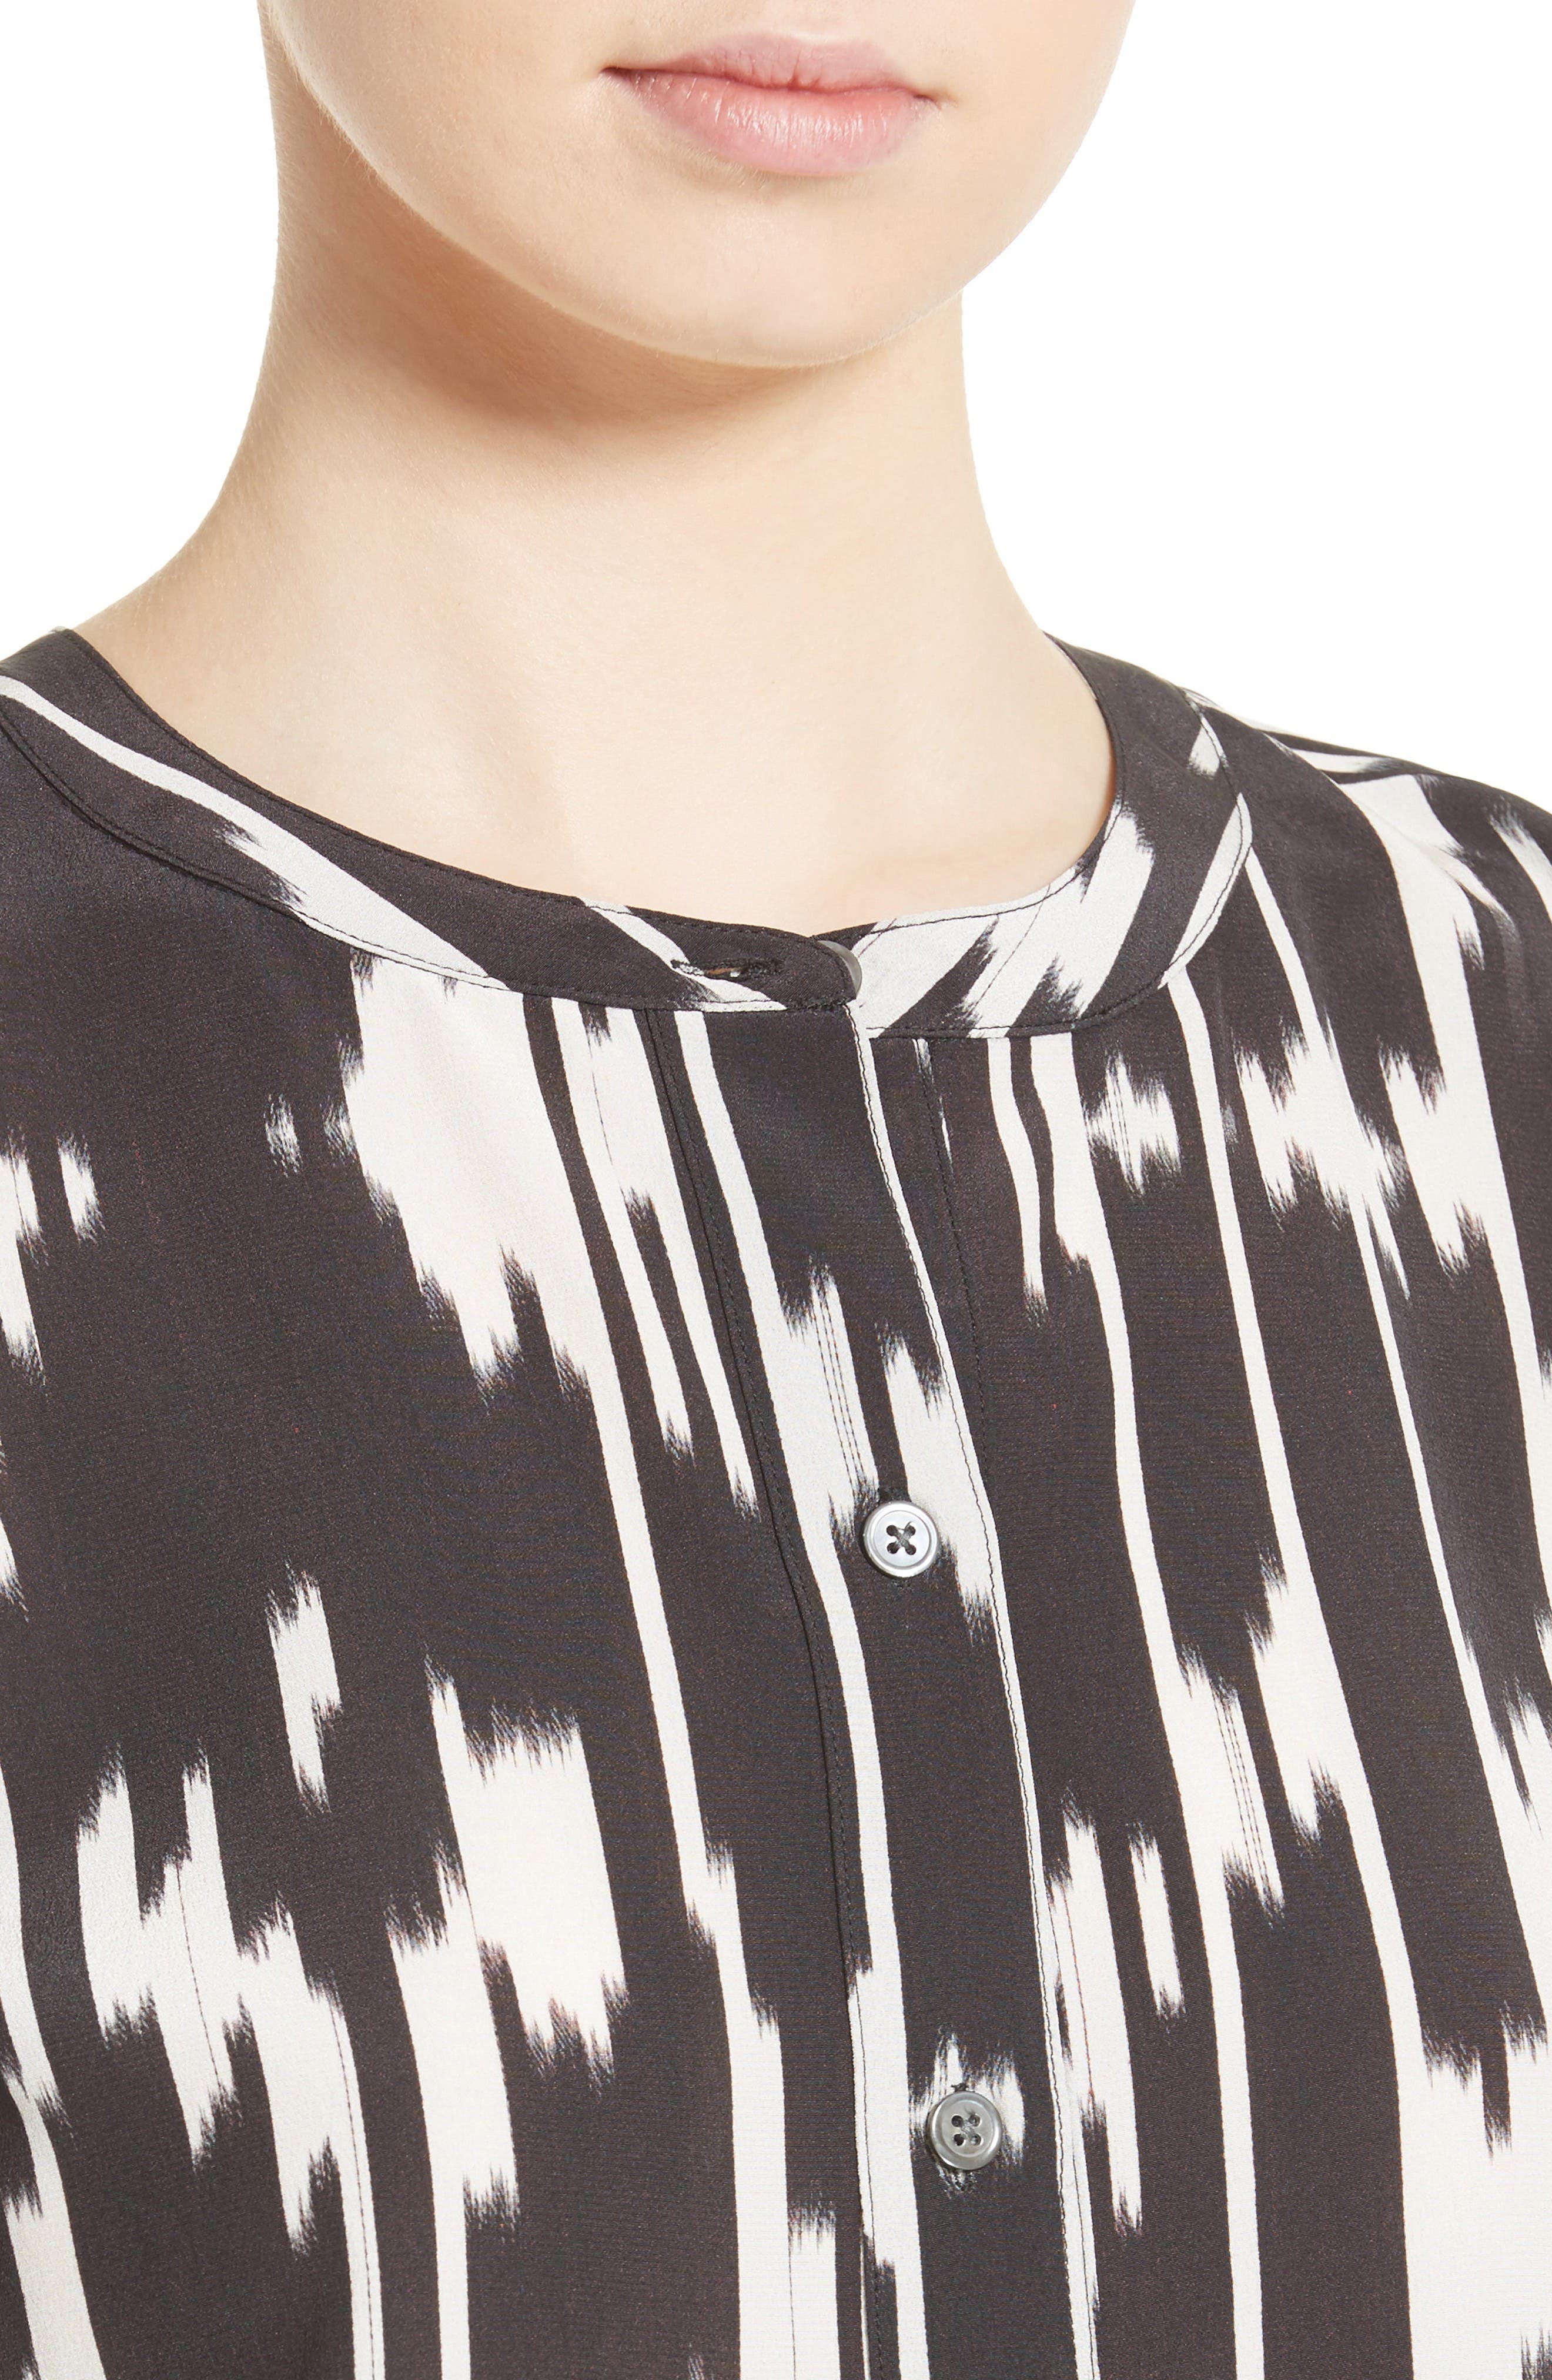 Isalva Interlace Ikat Silk Top,                             Alternate thumbnail 4, color,                             015